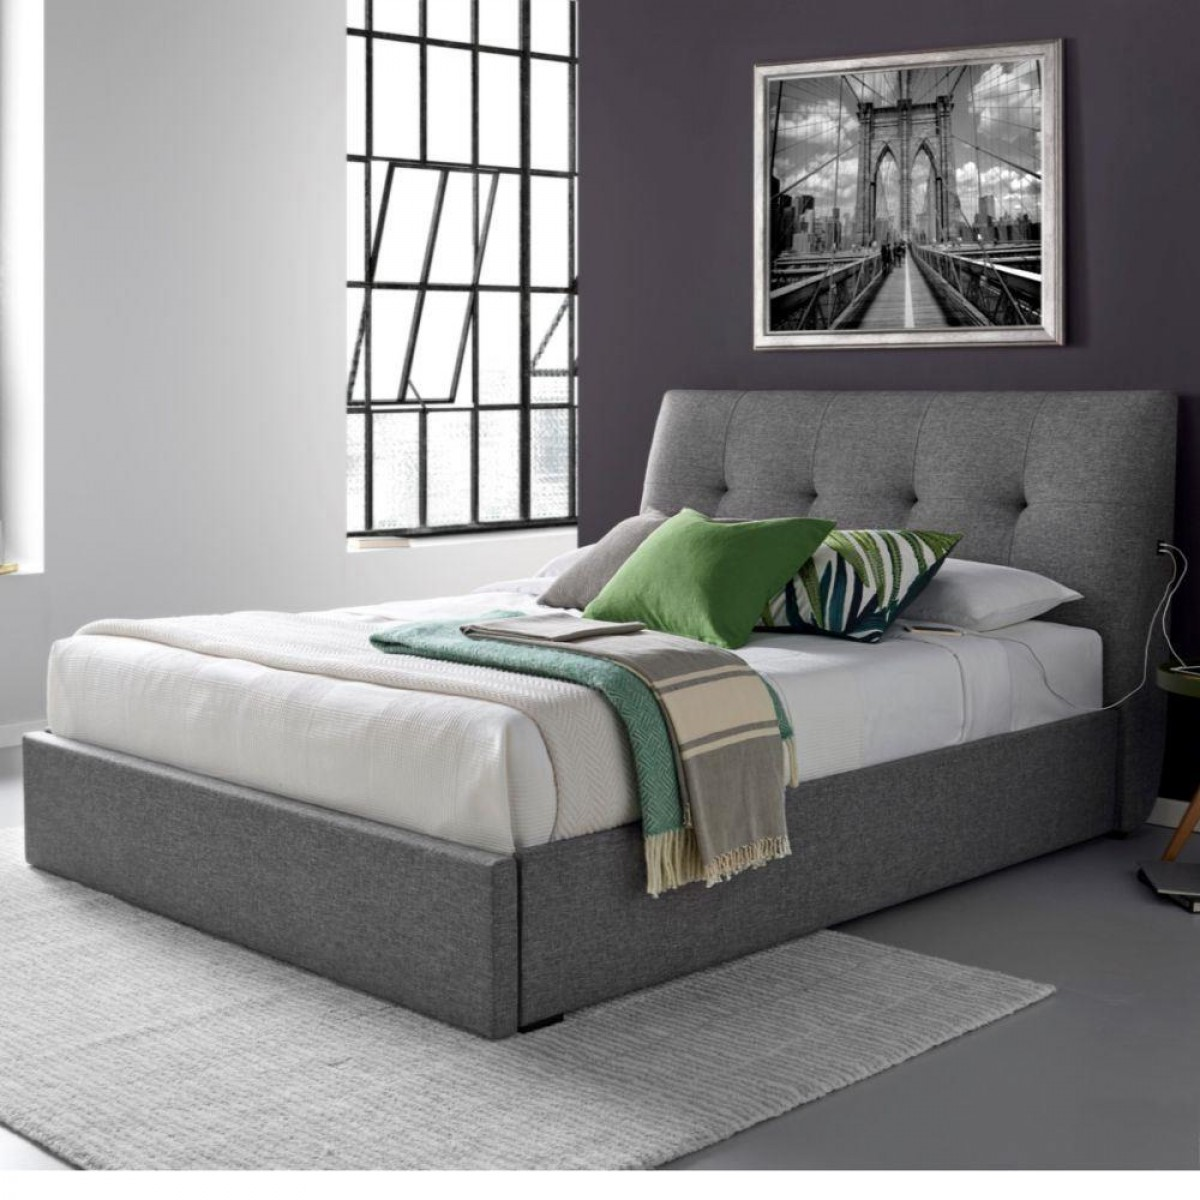 Gosforth Gabon Grey End Drawer Storage Bed with 2 USB ports